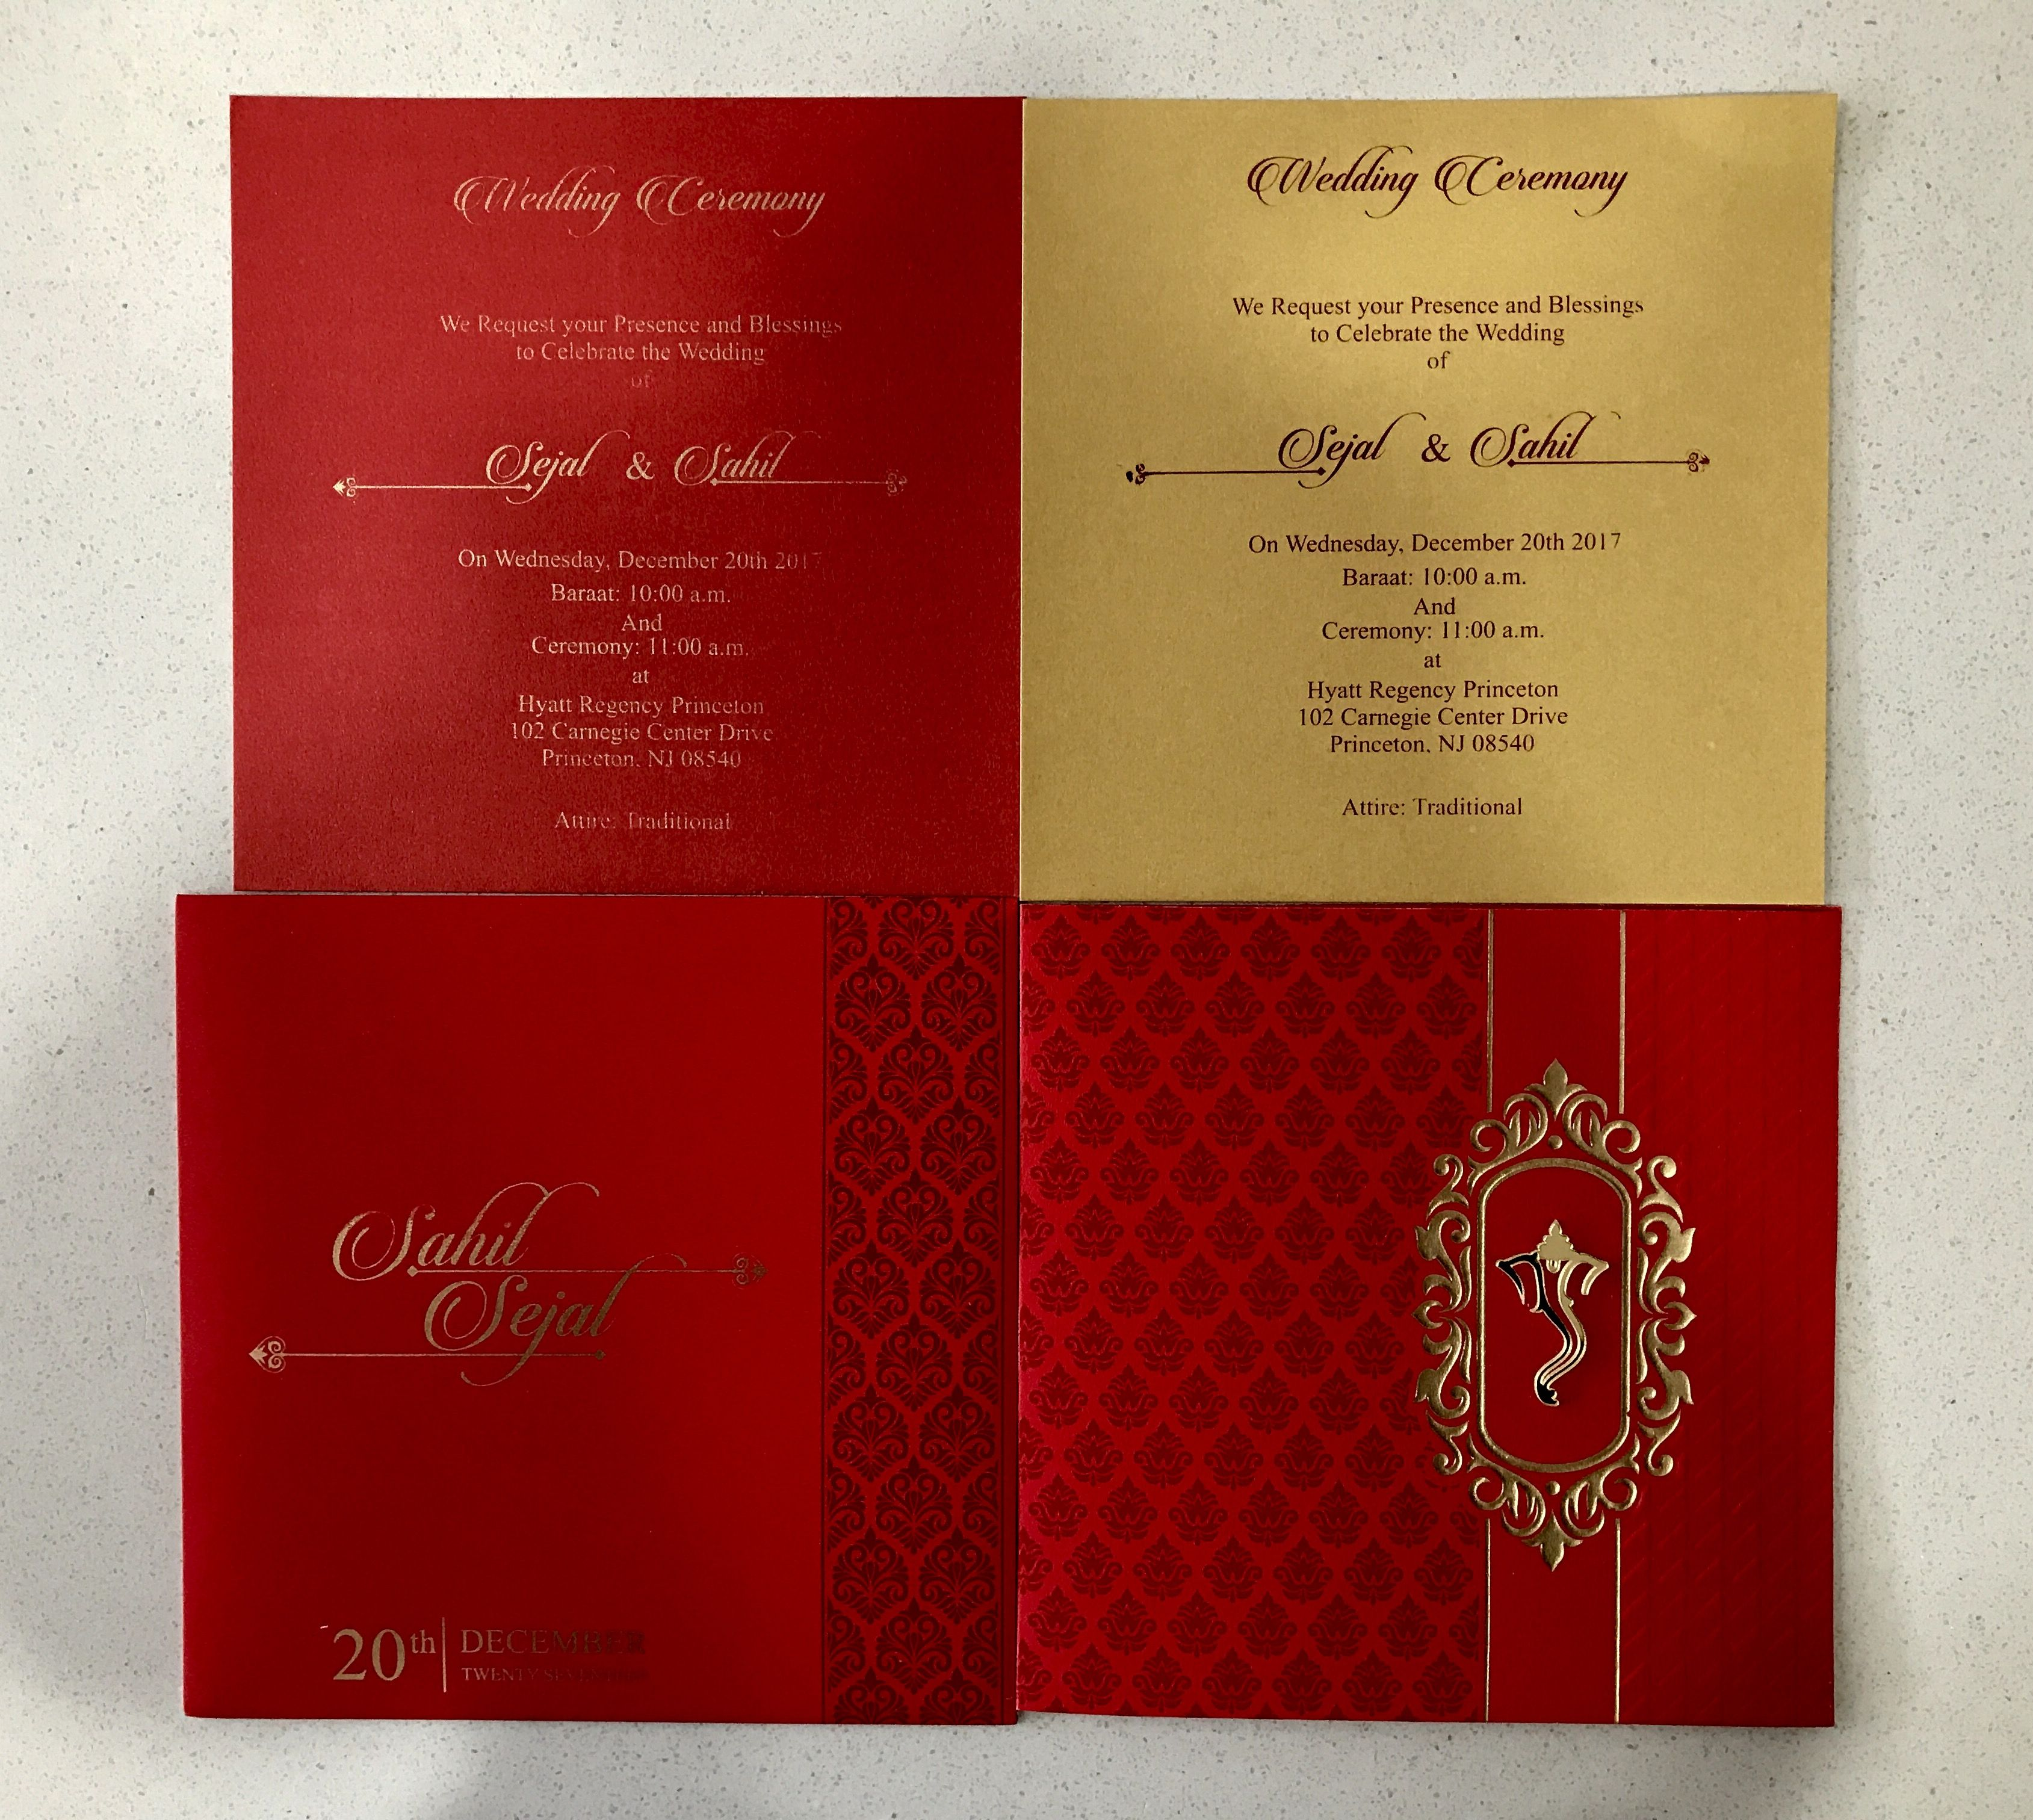 Pin by Siddhi Cards on Wedding Invitation Cards | Pinterest ...